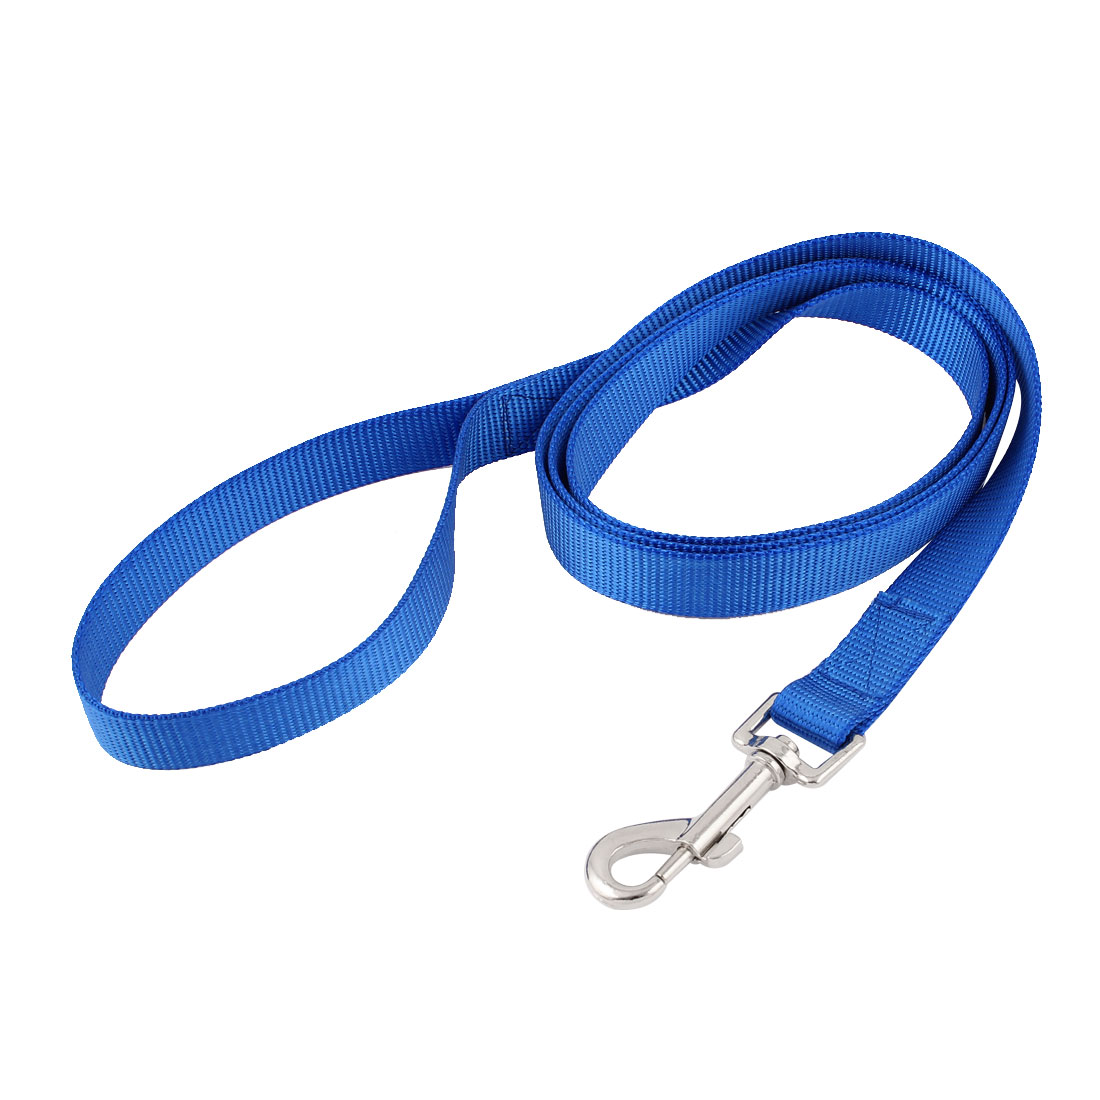 Pet Dog Puppy Nylon Swivel Hook Training Walk Lead Leash Rope 150cm Lenth Blue